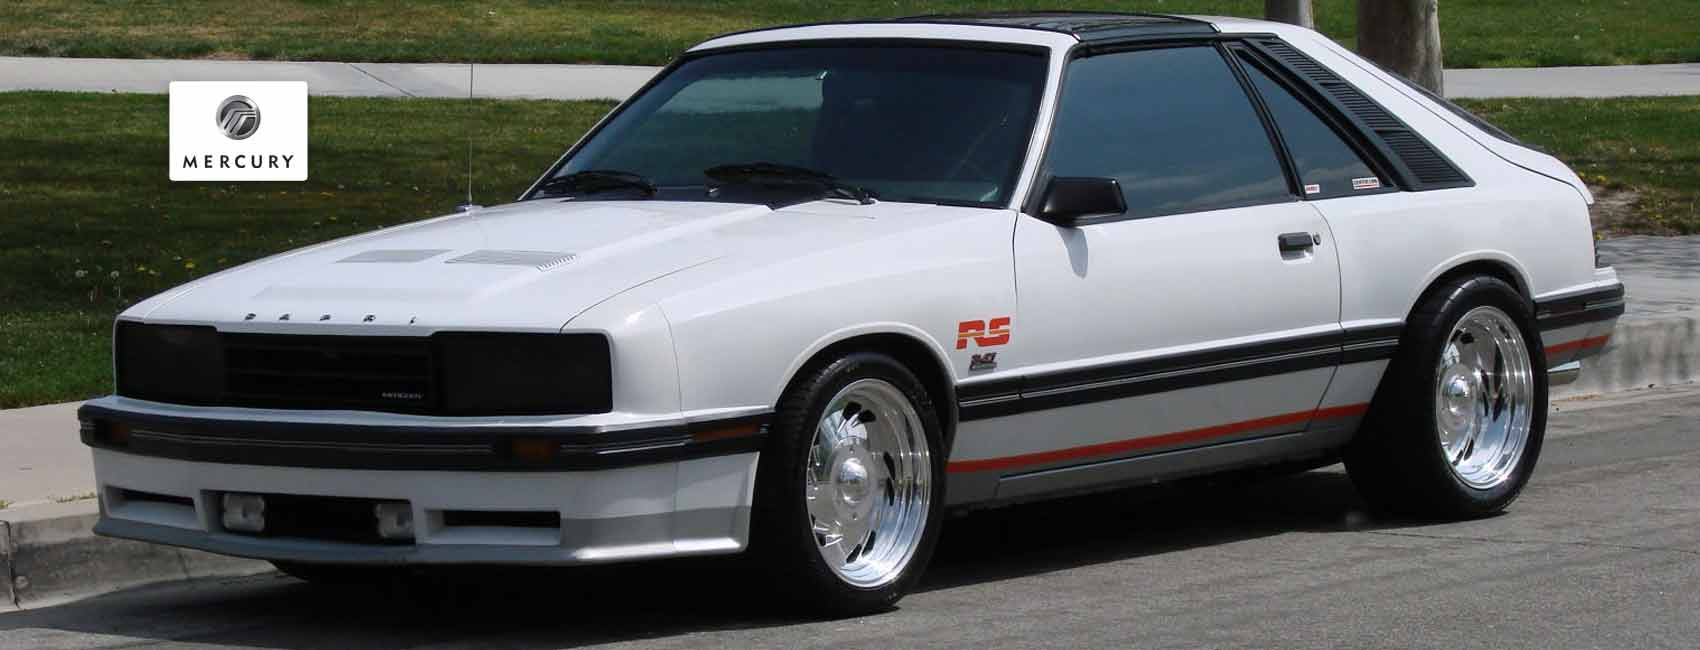 Mercury Capri Parts - Buy Used Mercury Capri Parts Online